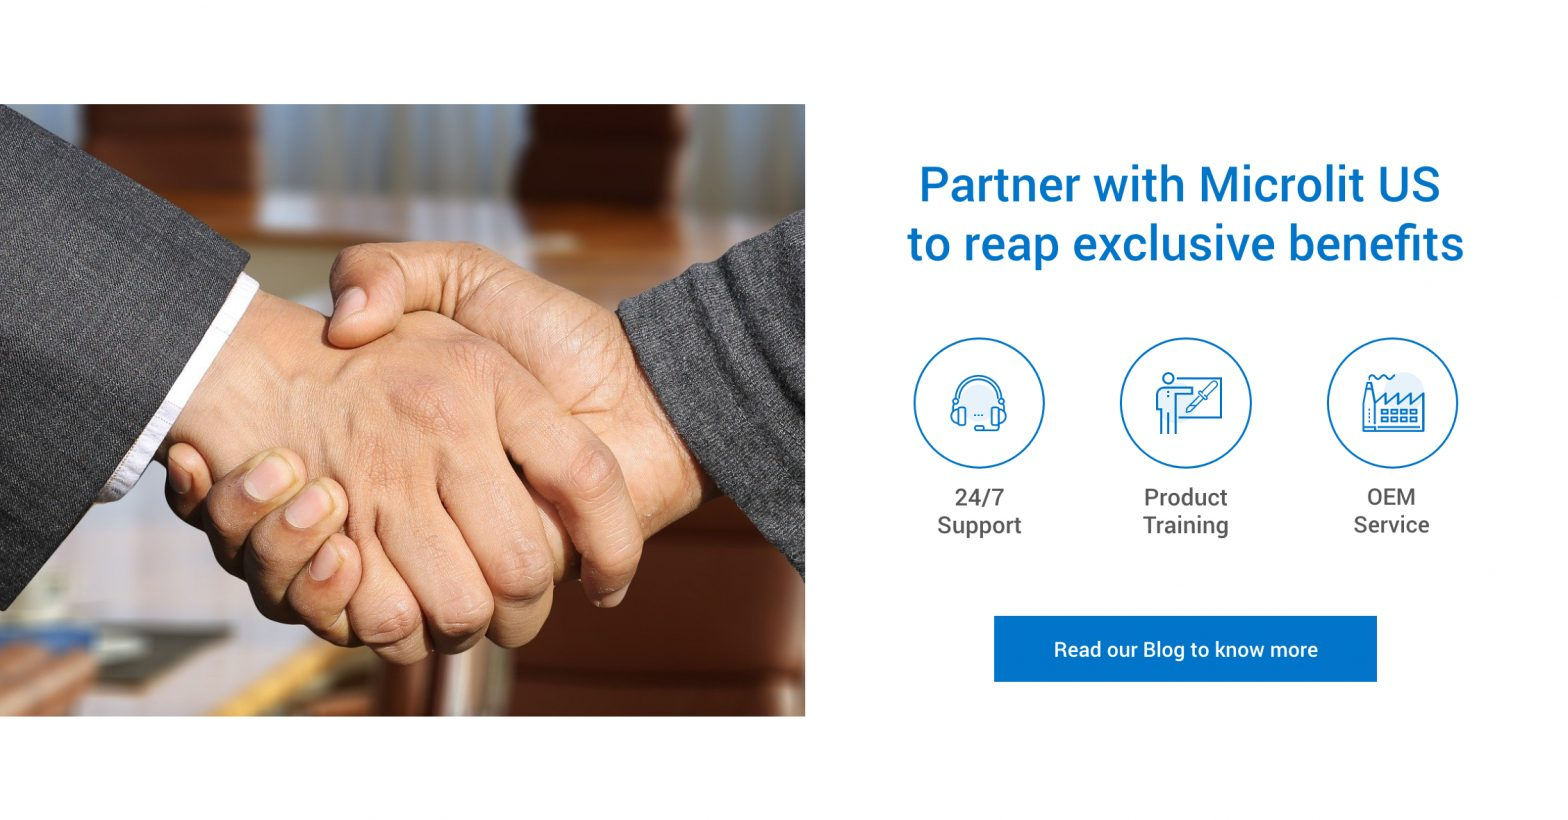 Partner with Microlit